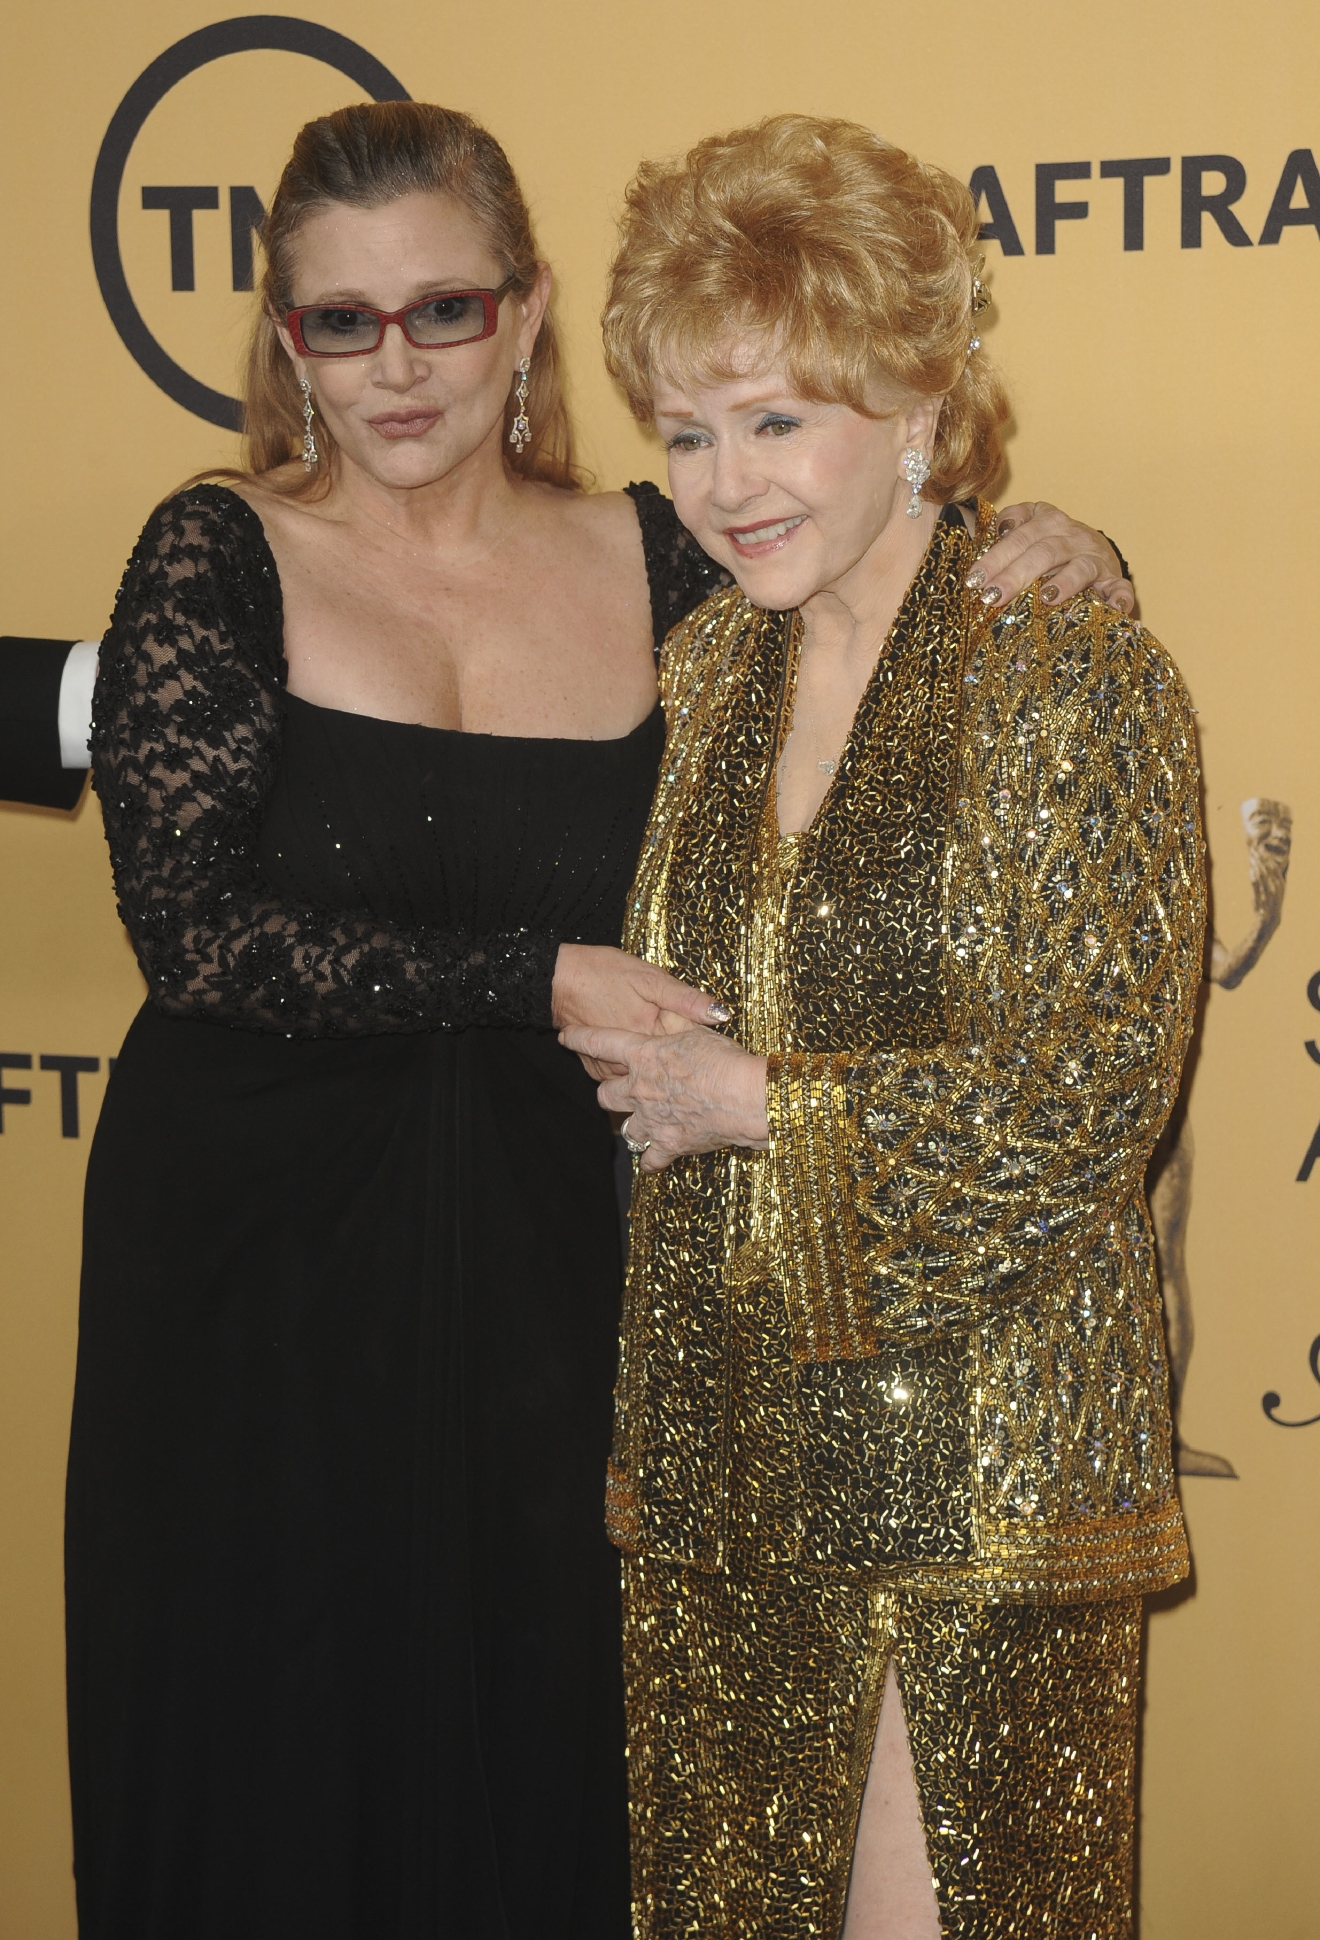 21st Annual Screen Actors Guild Awards Pressroom  Featuring: Debbie Reynolds, Carrie Fisher Where: Los Angeles, California, United States When: 26 Jan 2015 Credit: Apega/WENN.com